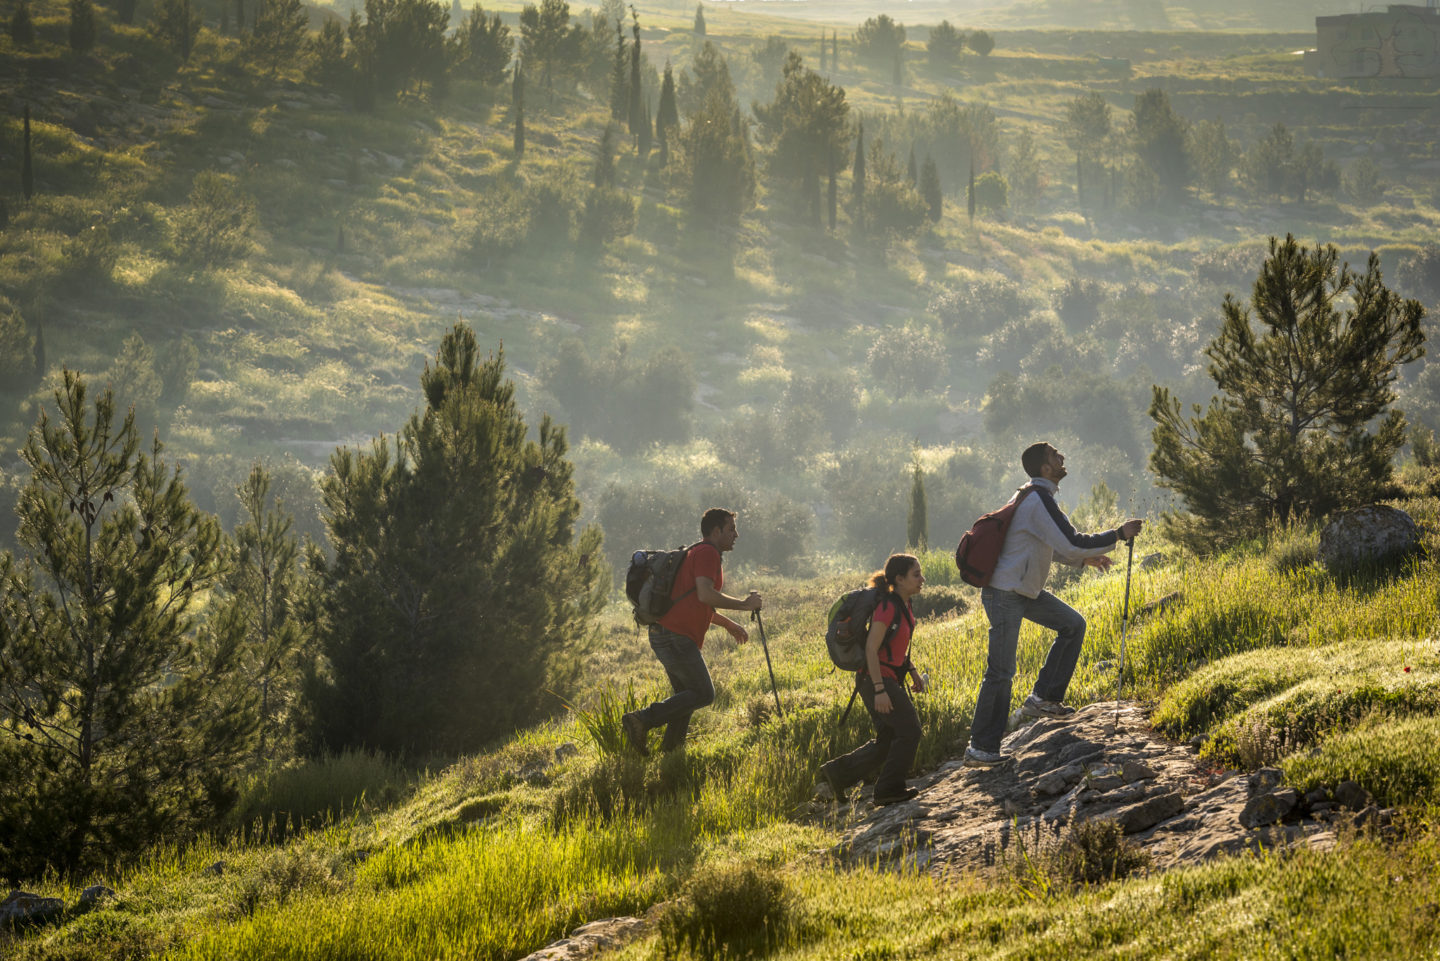 Community-based tourism on a historic hiking trail | The Switchers